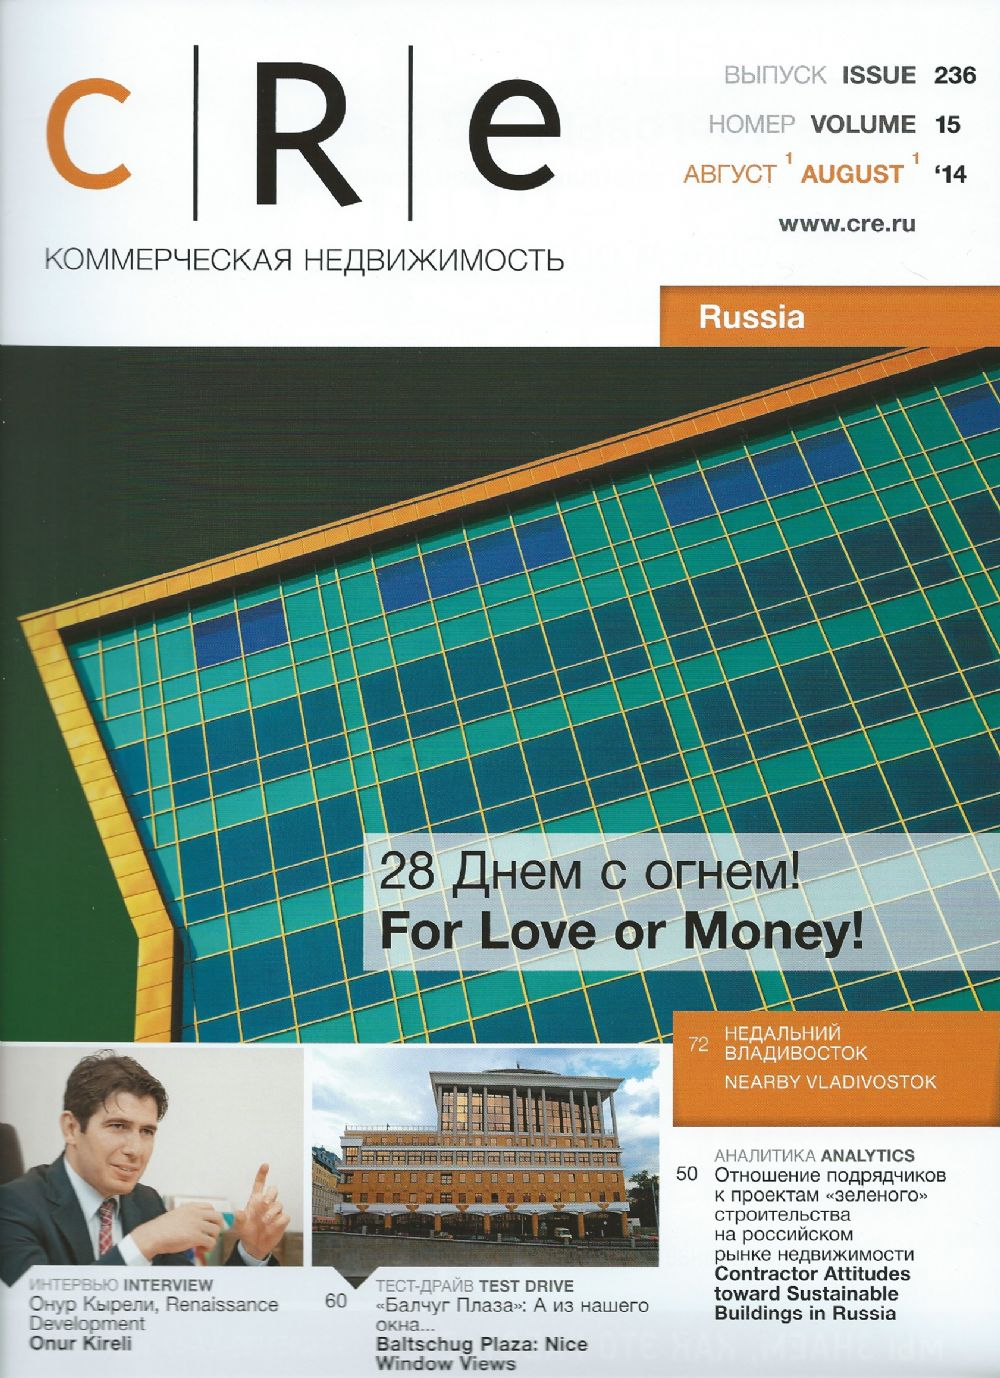 Article by SPC Solutions published in Commercial Real Estate (CRE) Russia analyzes fast developing competencies of contractors in green buildings in the Russian construction industry.